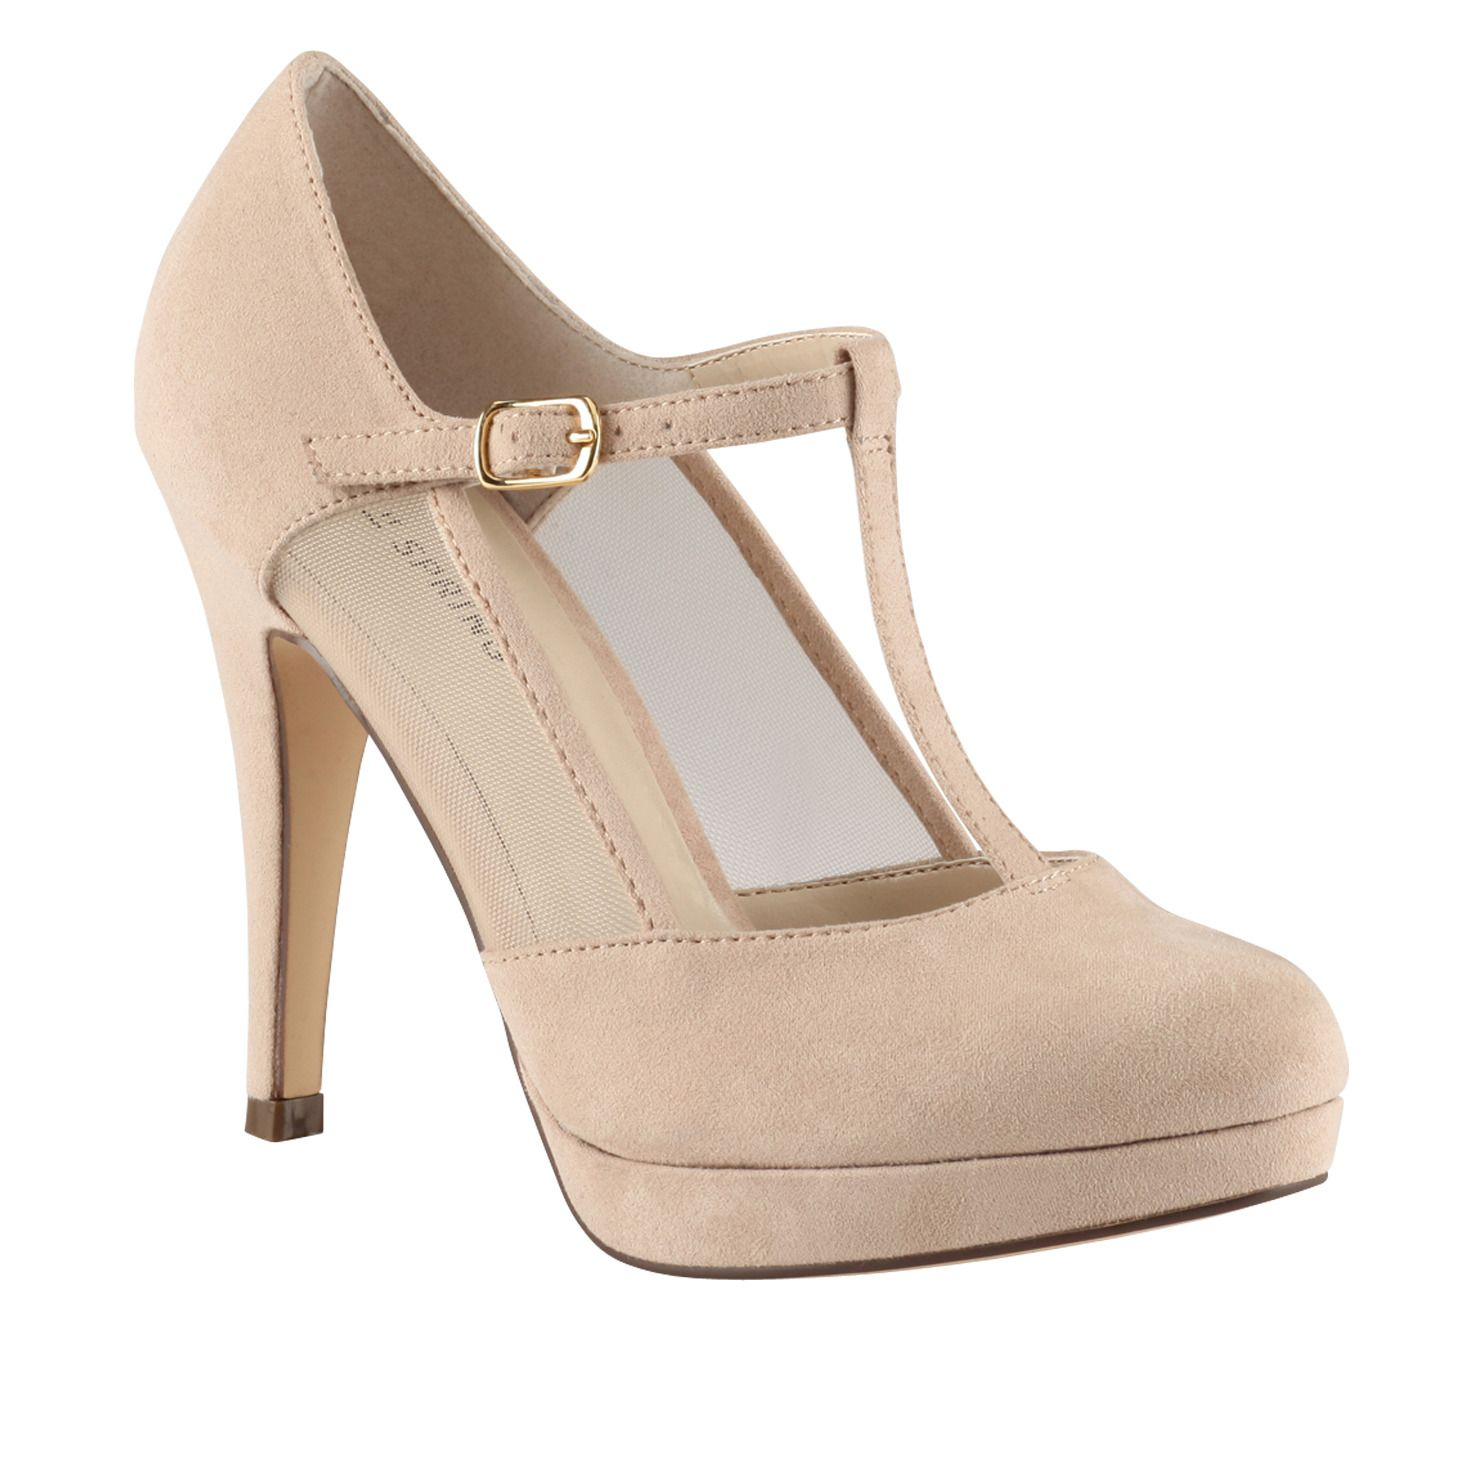 Buy ARANGEA women's shoes high heels at CALL IT SPRING. Free ...